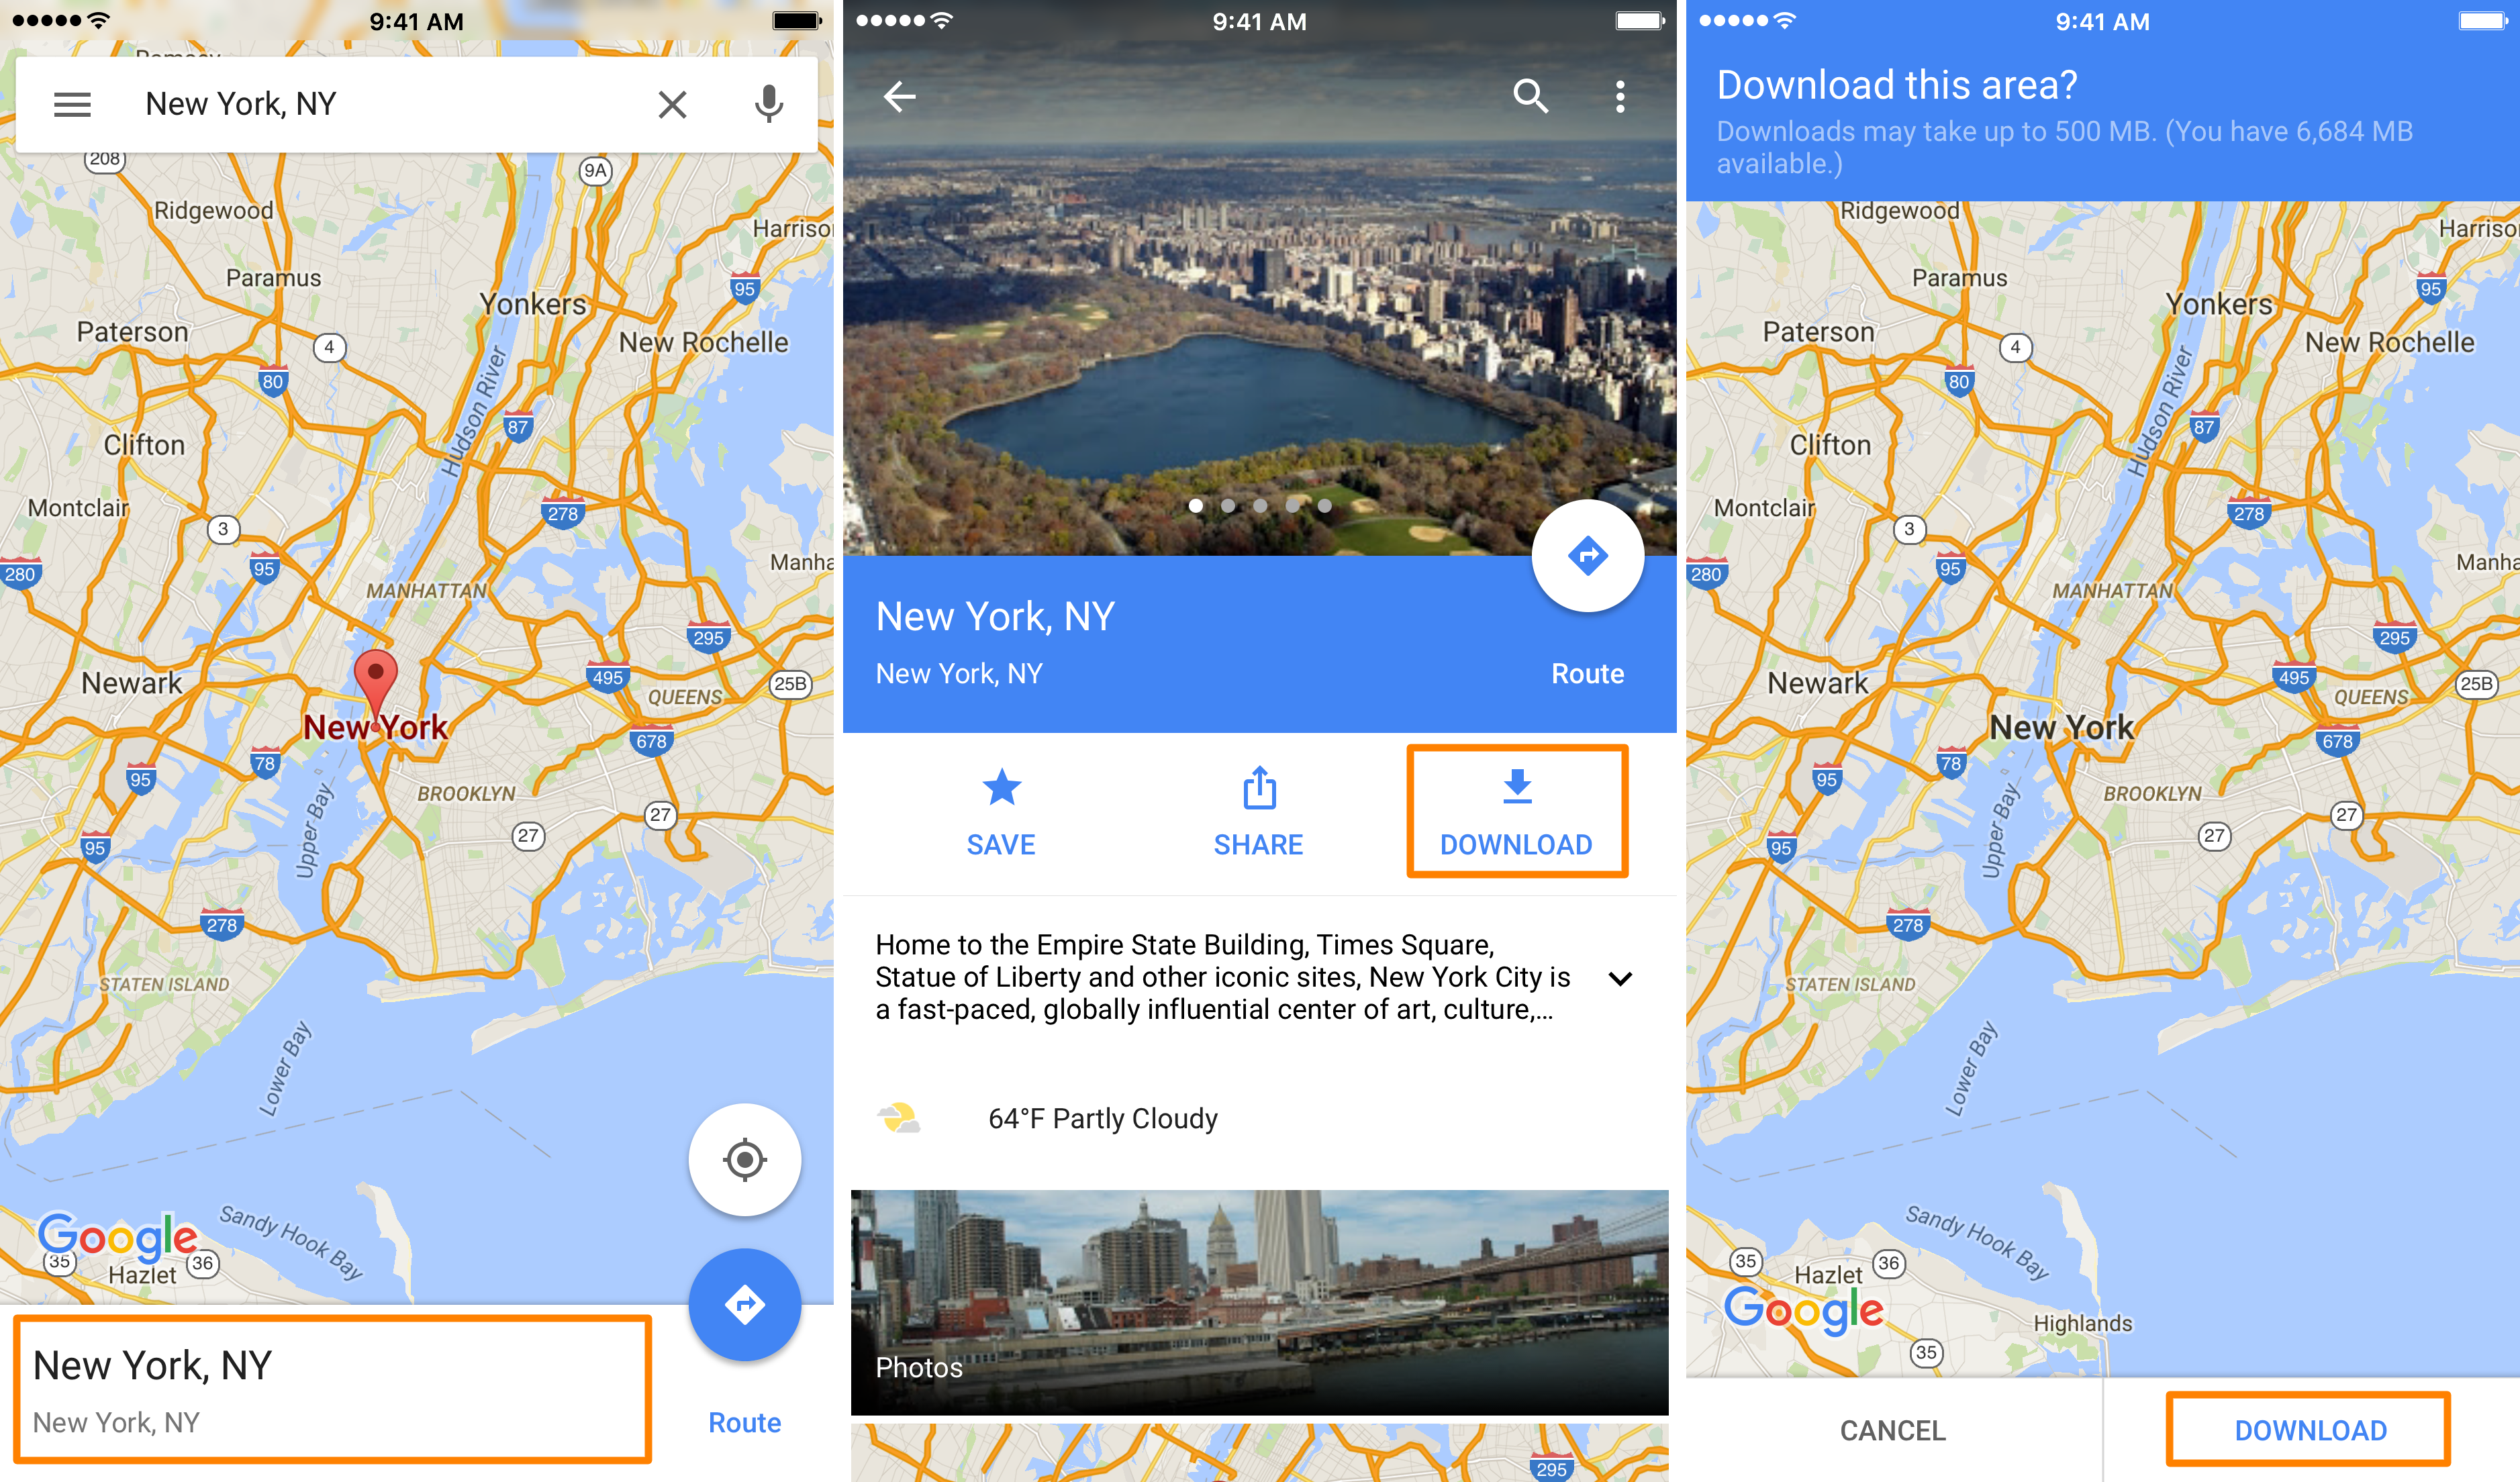 How to download areas in Google Maps for offline use Download Free Google Map on